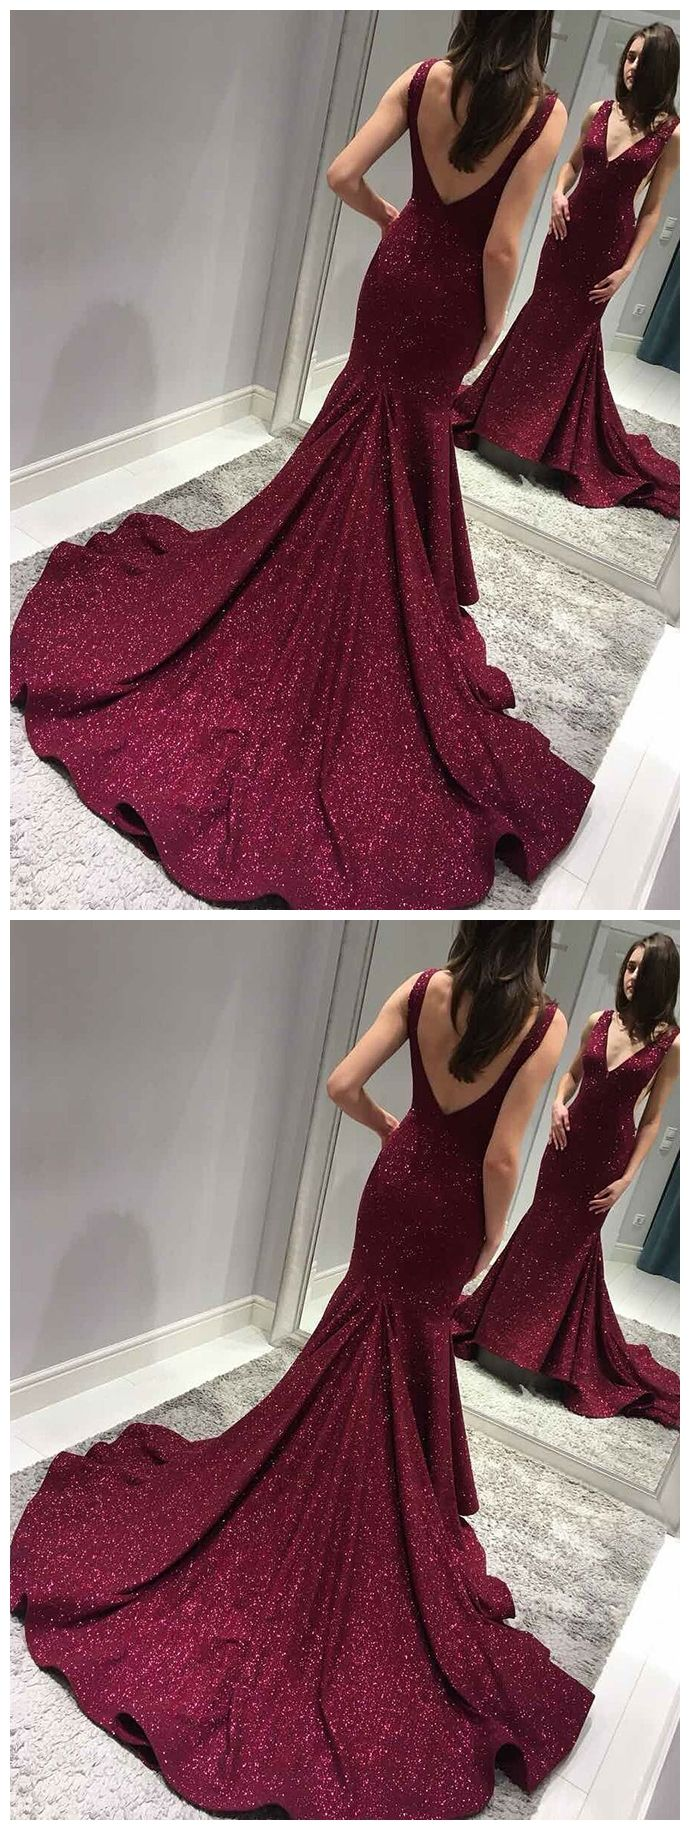 Sexy backless maroon sequin mermaid side slit long evening prom